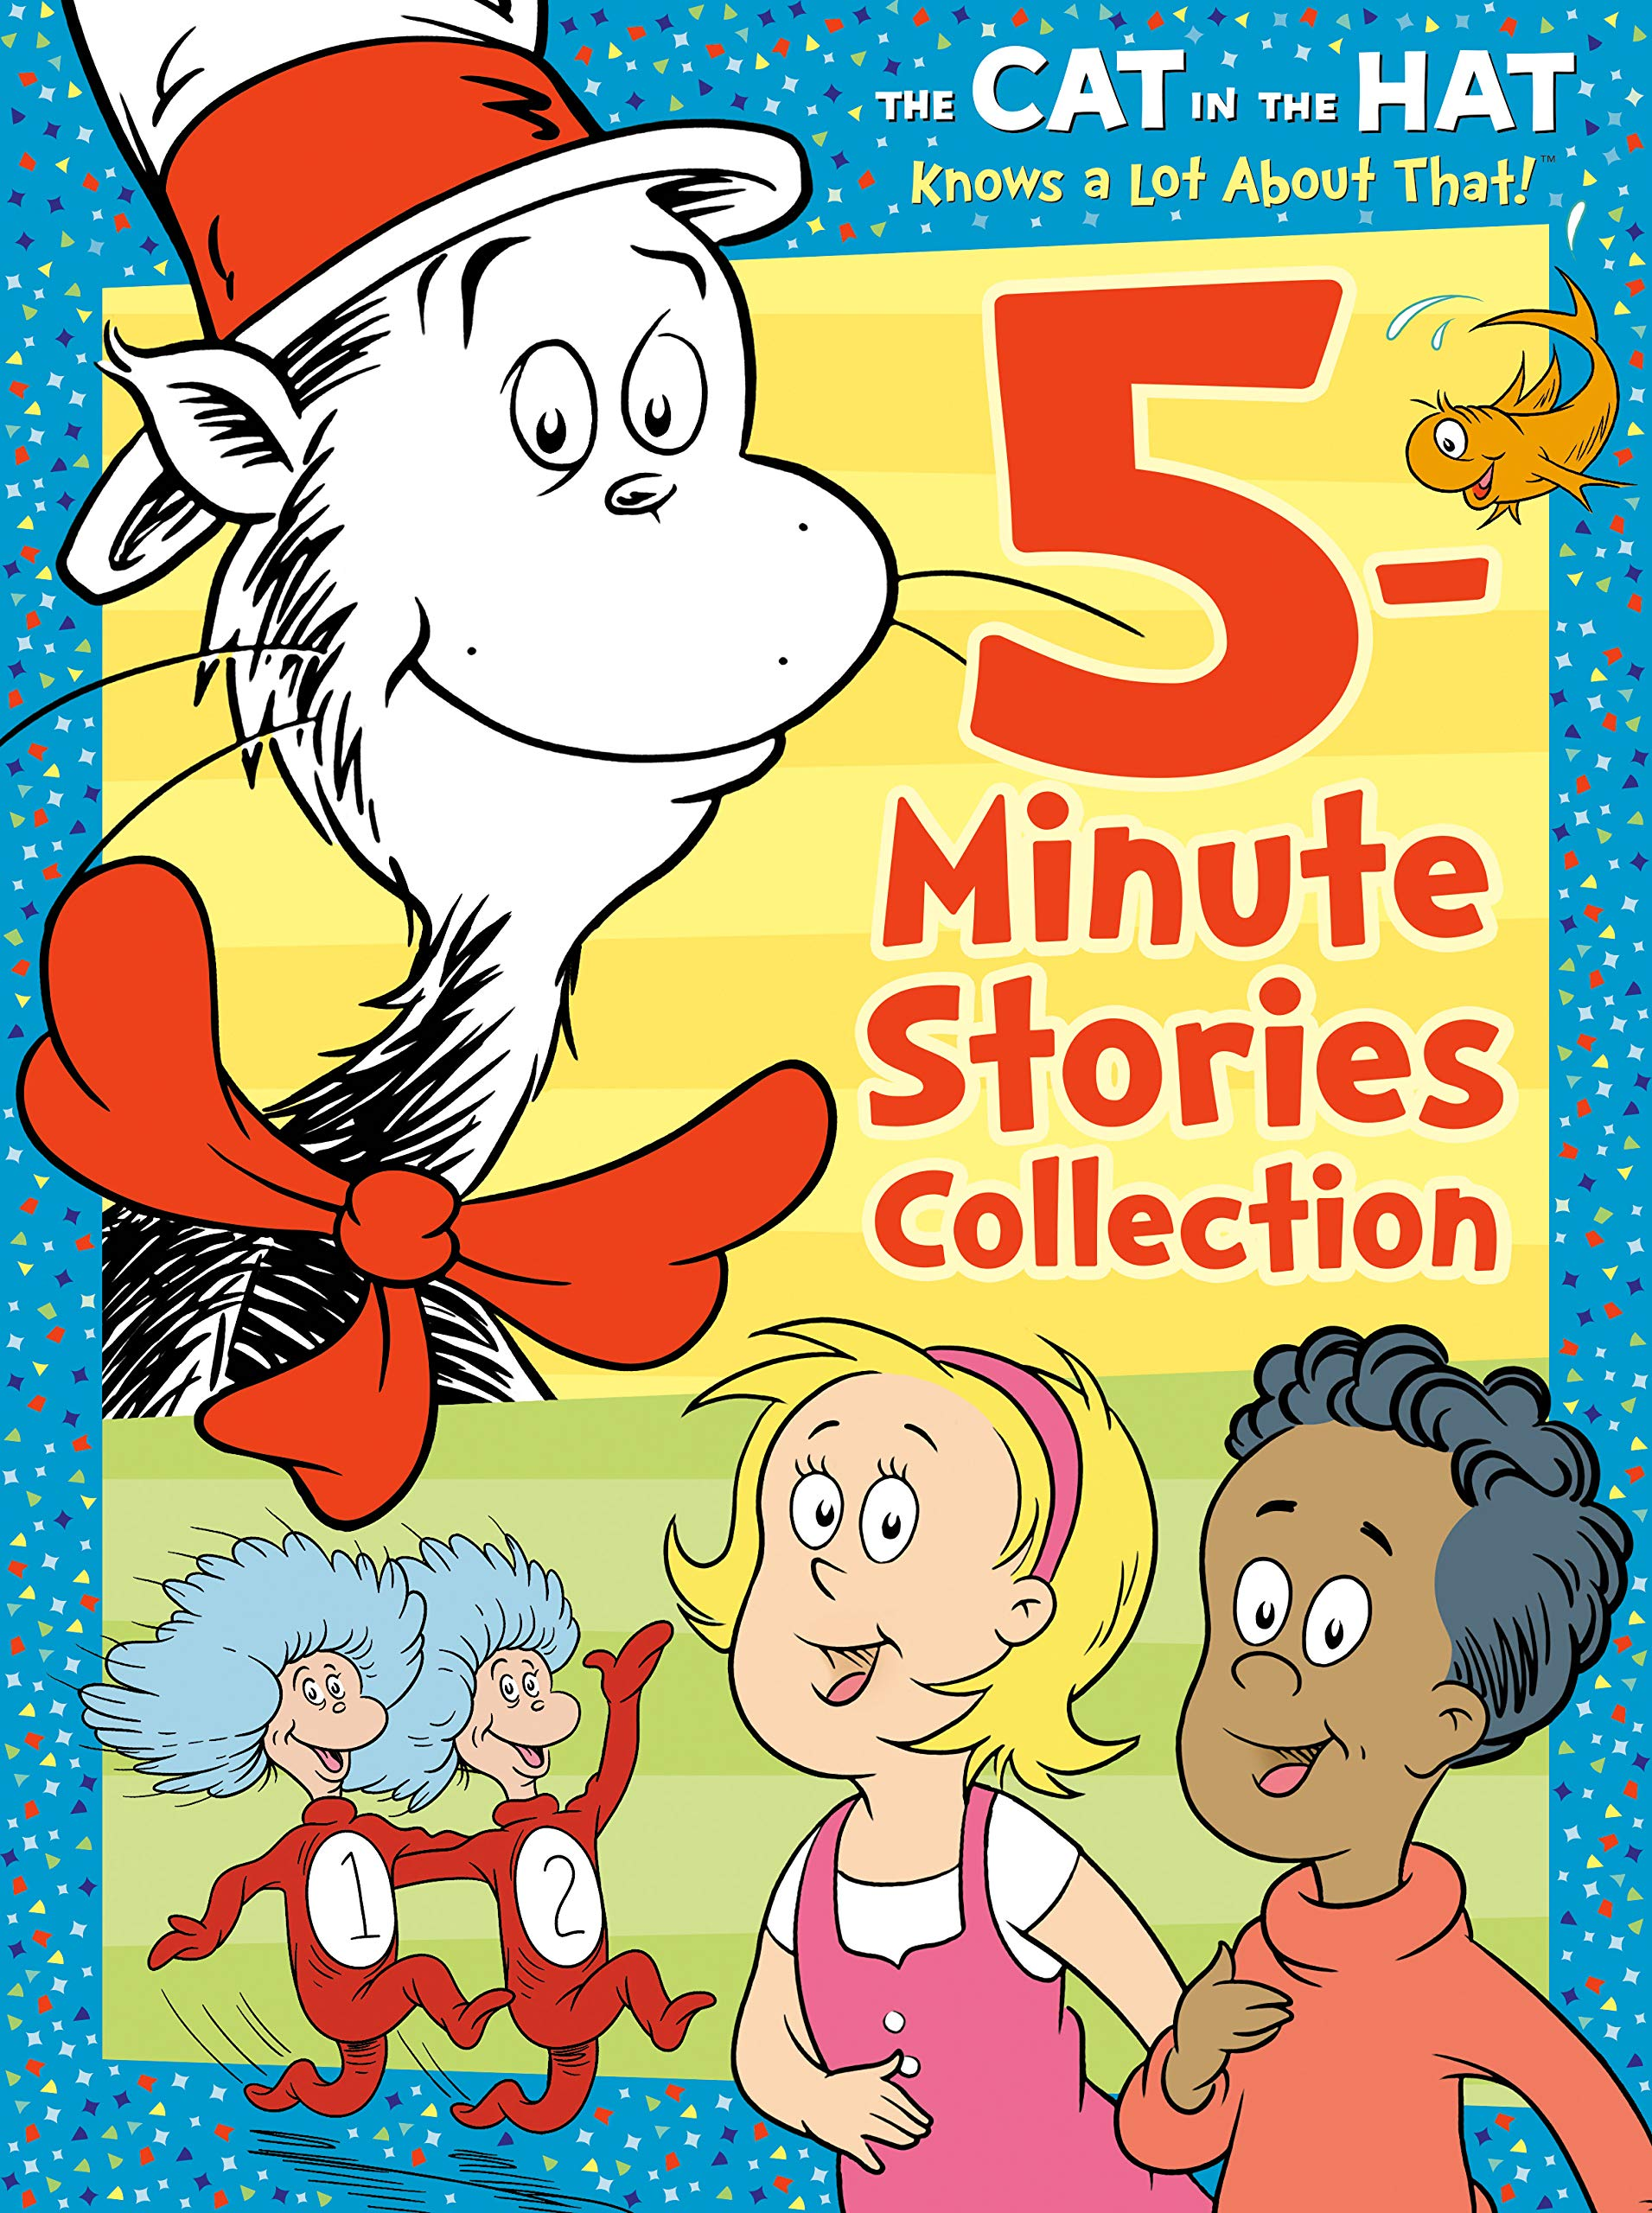 The Cat in the Hat Knows a Lot About That 5-Minute Stories Collection (Dr.  Seuss /The Cat in the Hat Knows a Lot About That): Random House, Random  House: 9780593373545: Amazon.com: Books